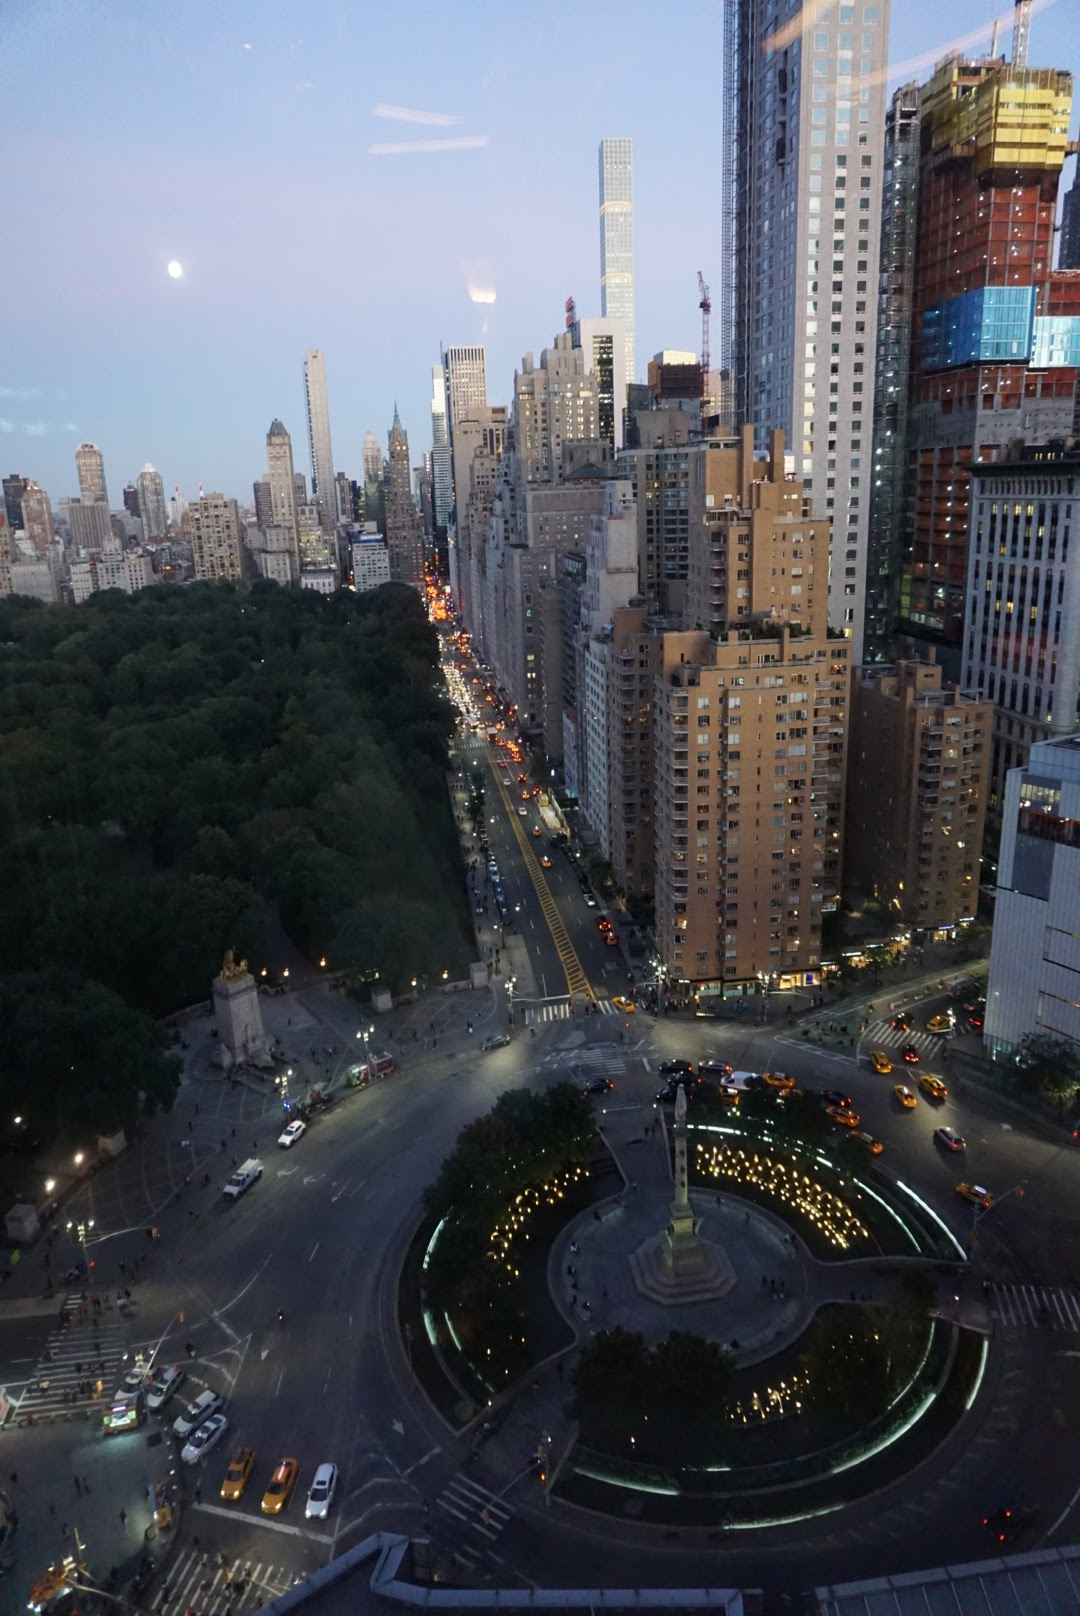 The view from the 35th floor of the Mandarin Oriental